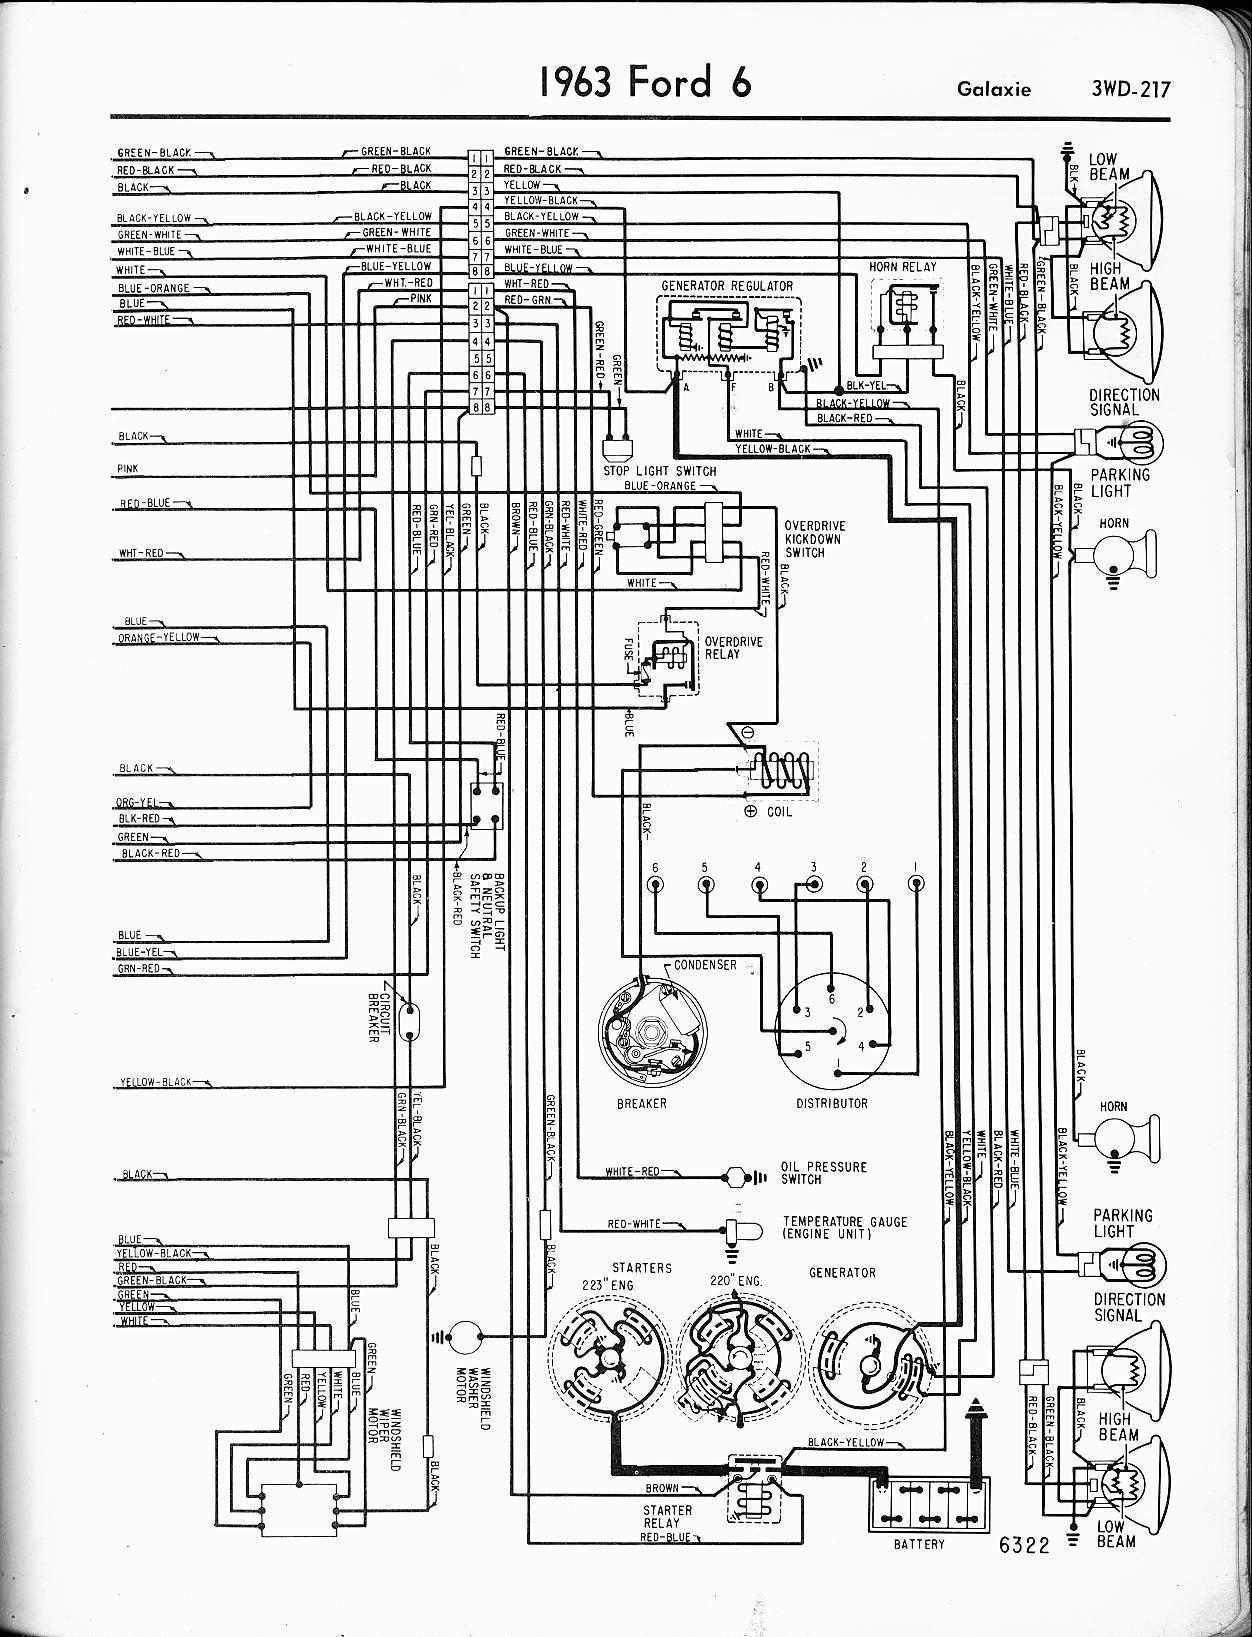 1964 Ford Ignition Switch Wiring Trusted Diagram Fj40 Galaxie Schematics Diagrams U2022 1966